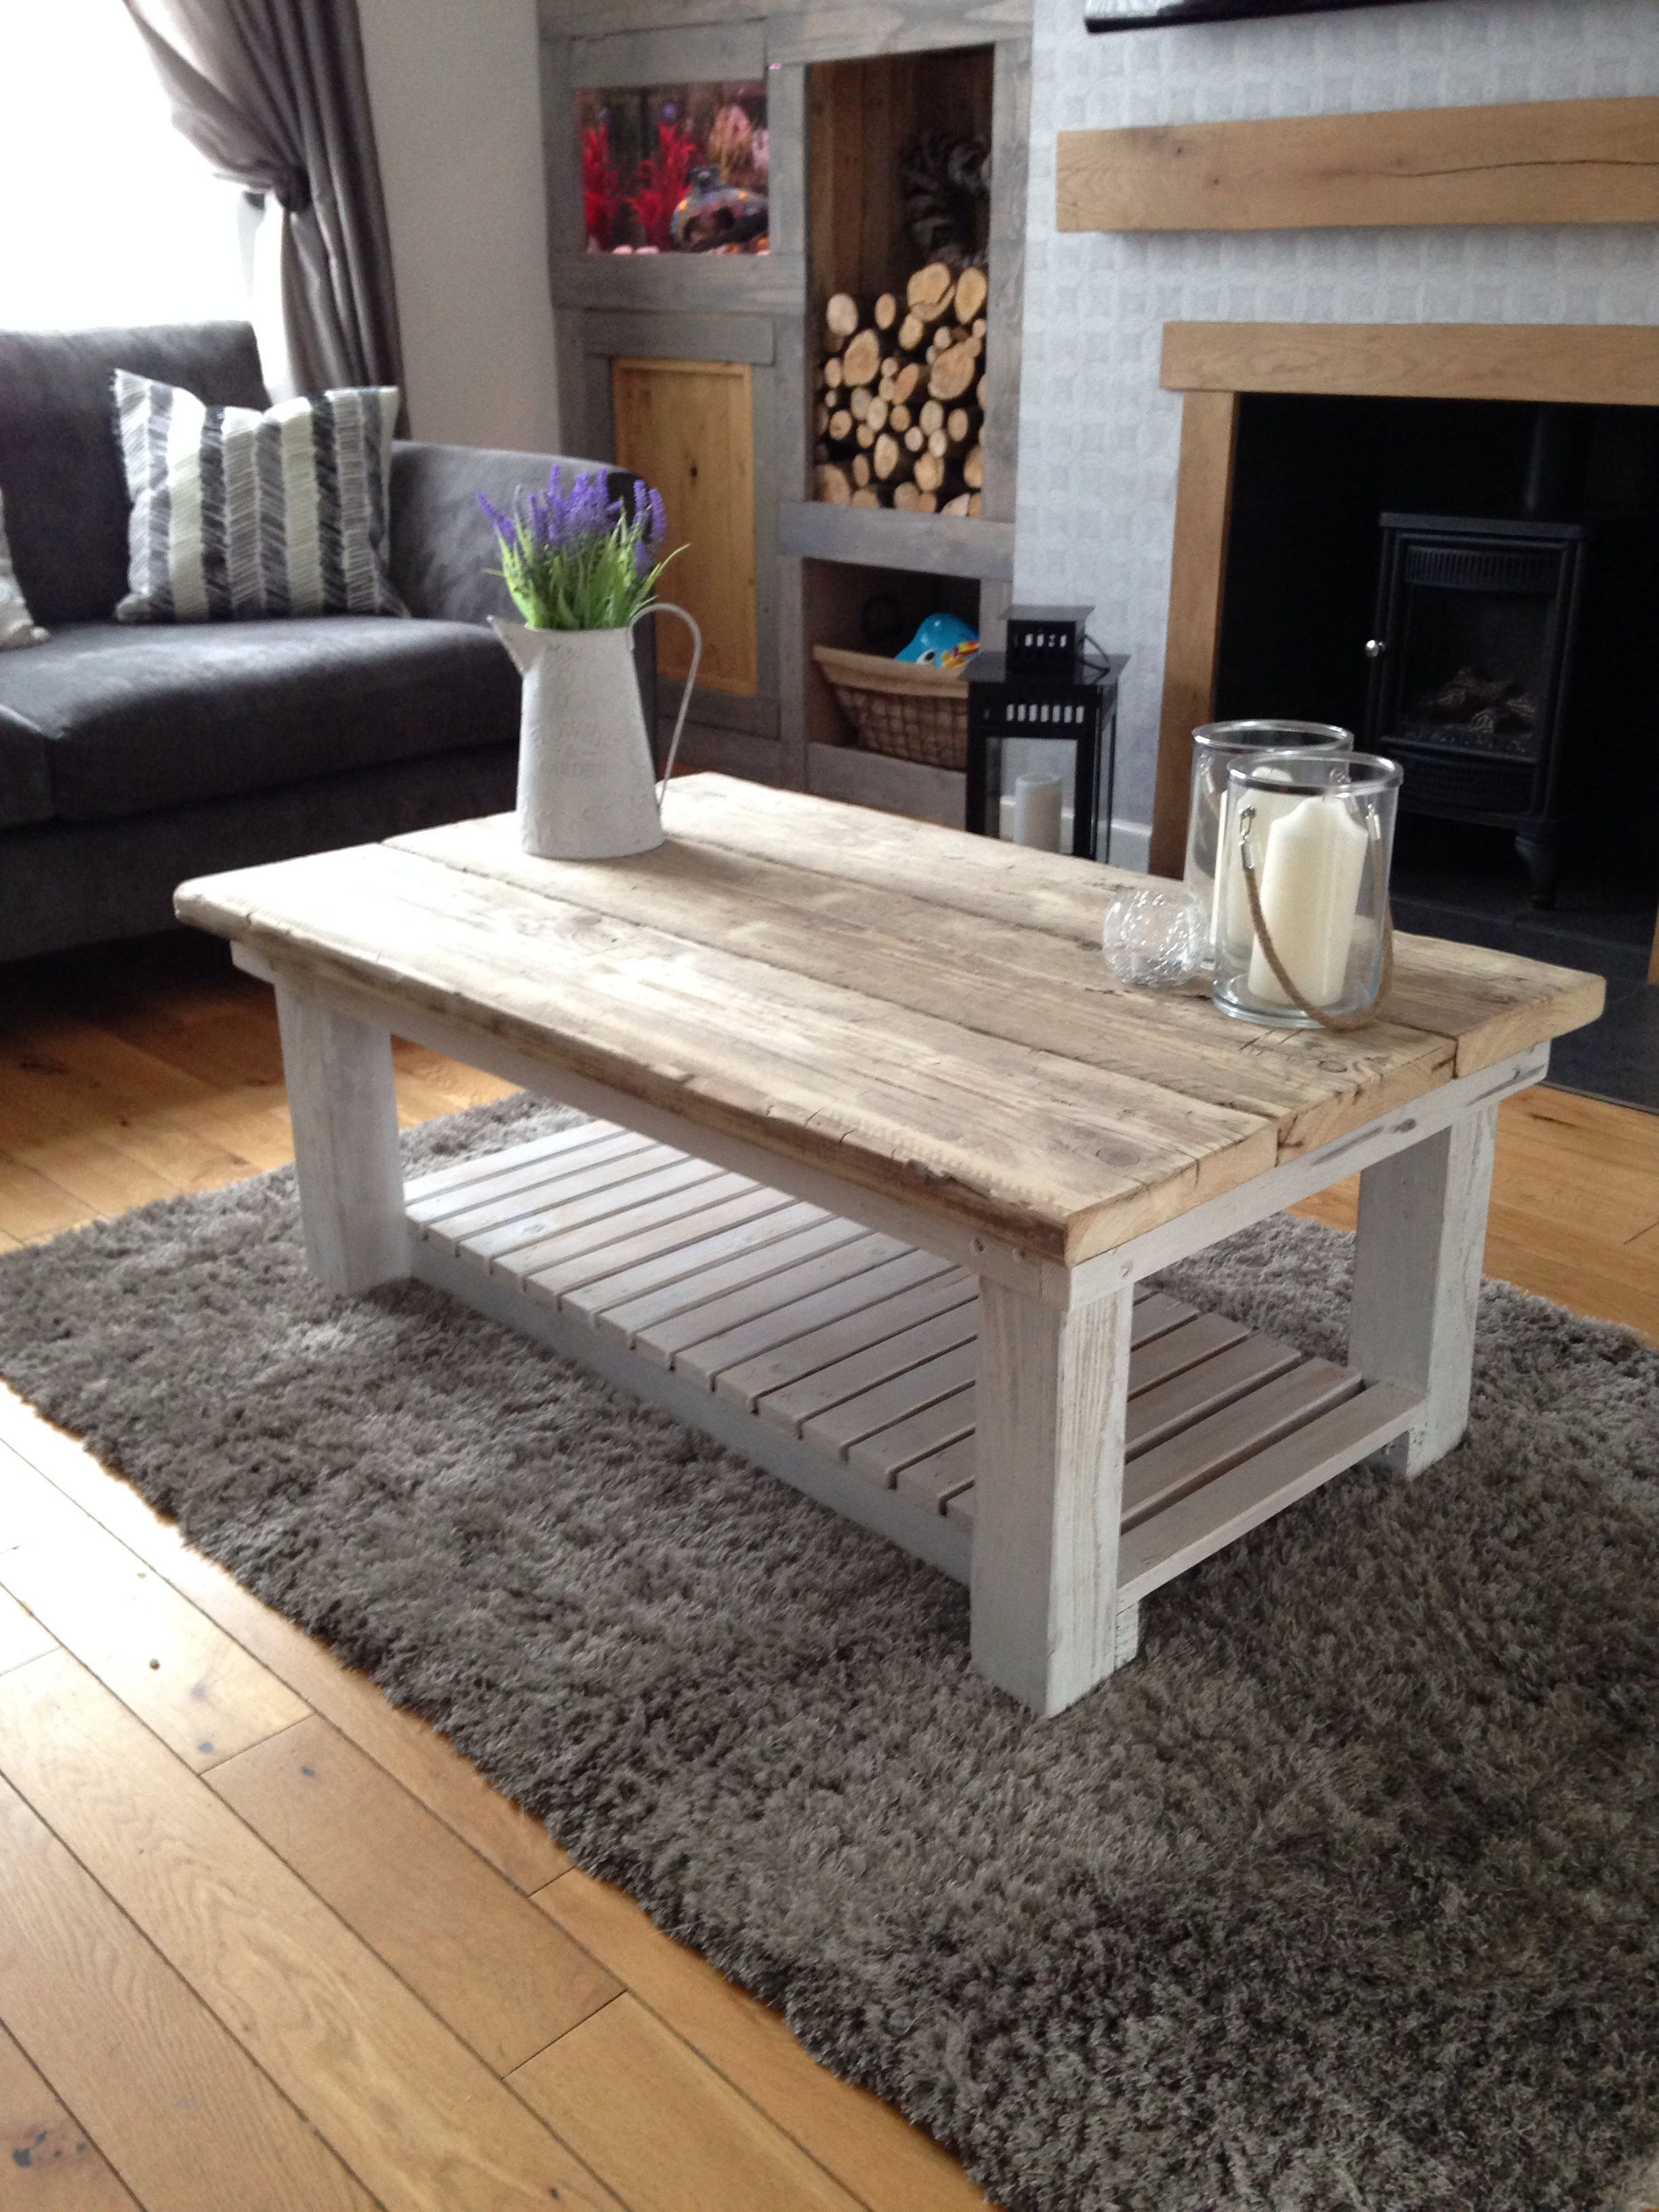 Reclaimed Scaffold Board Coffee Table Perfect Addition To Any Decor Shabby Chic Industri Coffee Table Inspiration Chic Coffee Table Shabby Chic Coffee Table